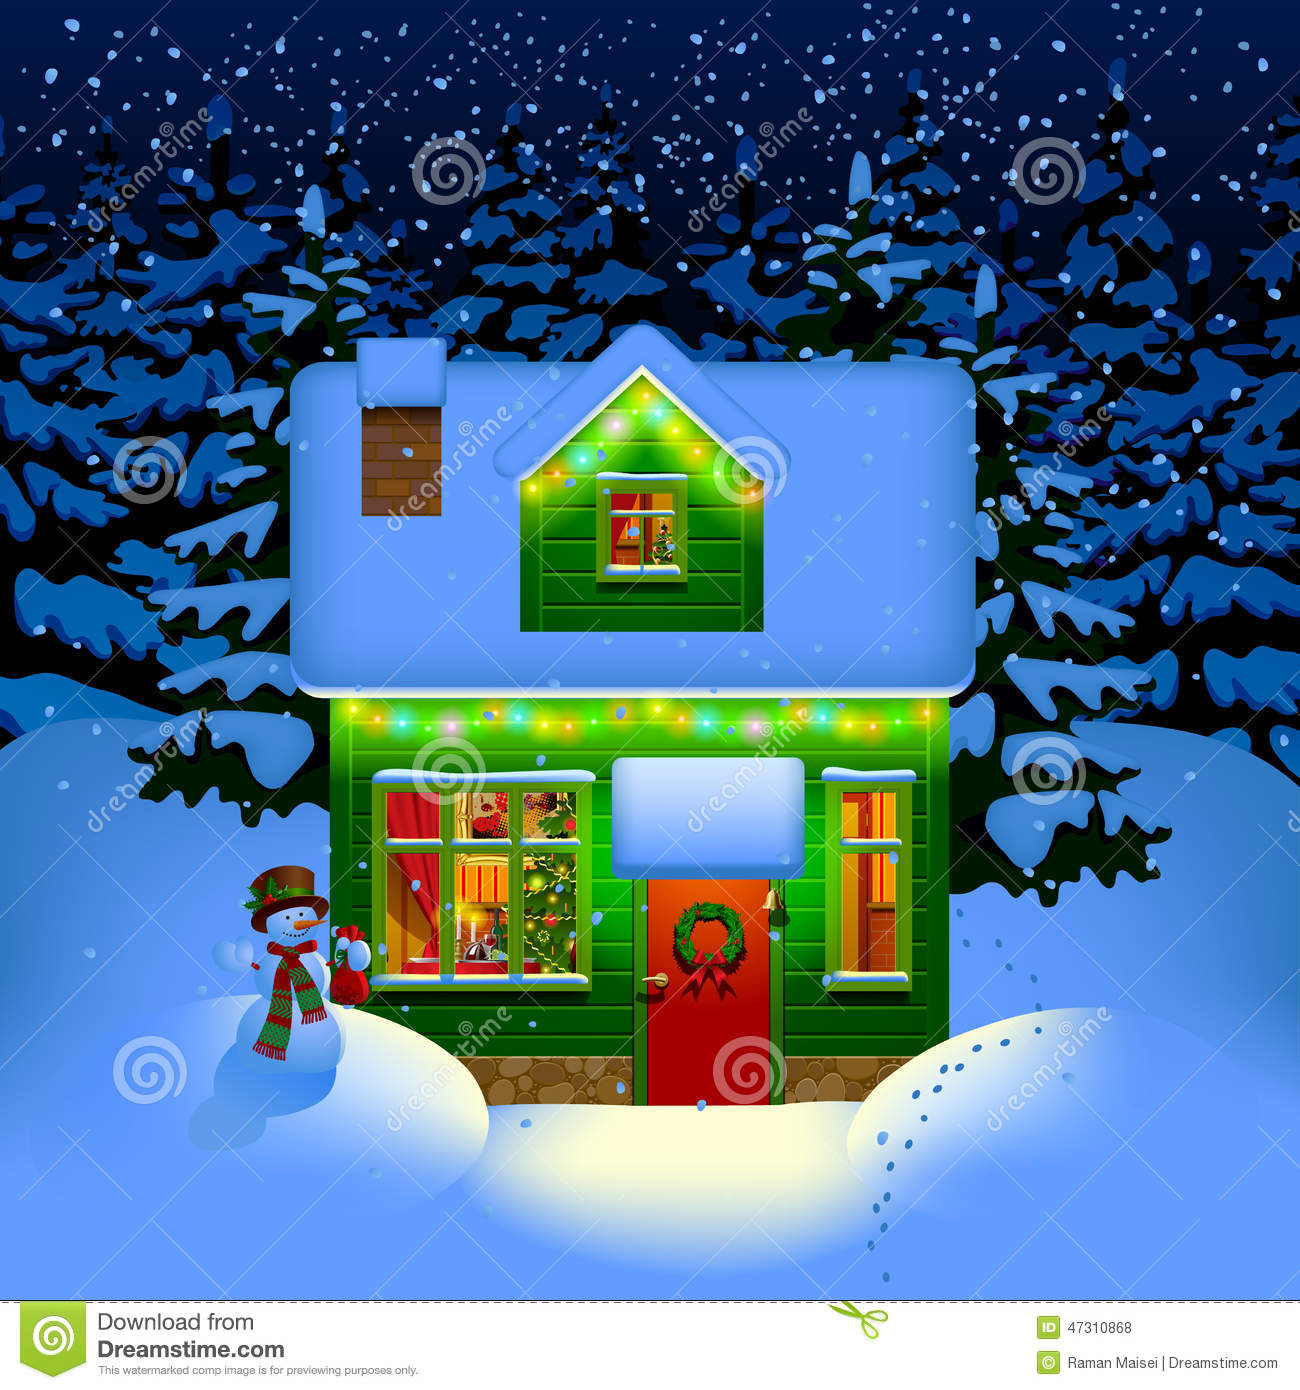 royalty free vector download night christmas house - Christmas House Pictures